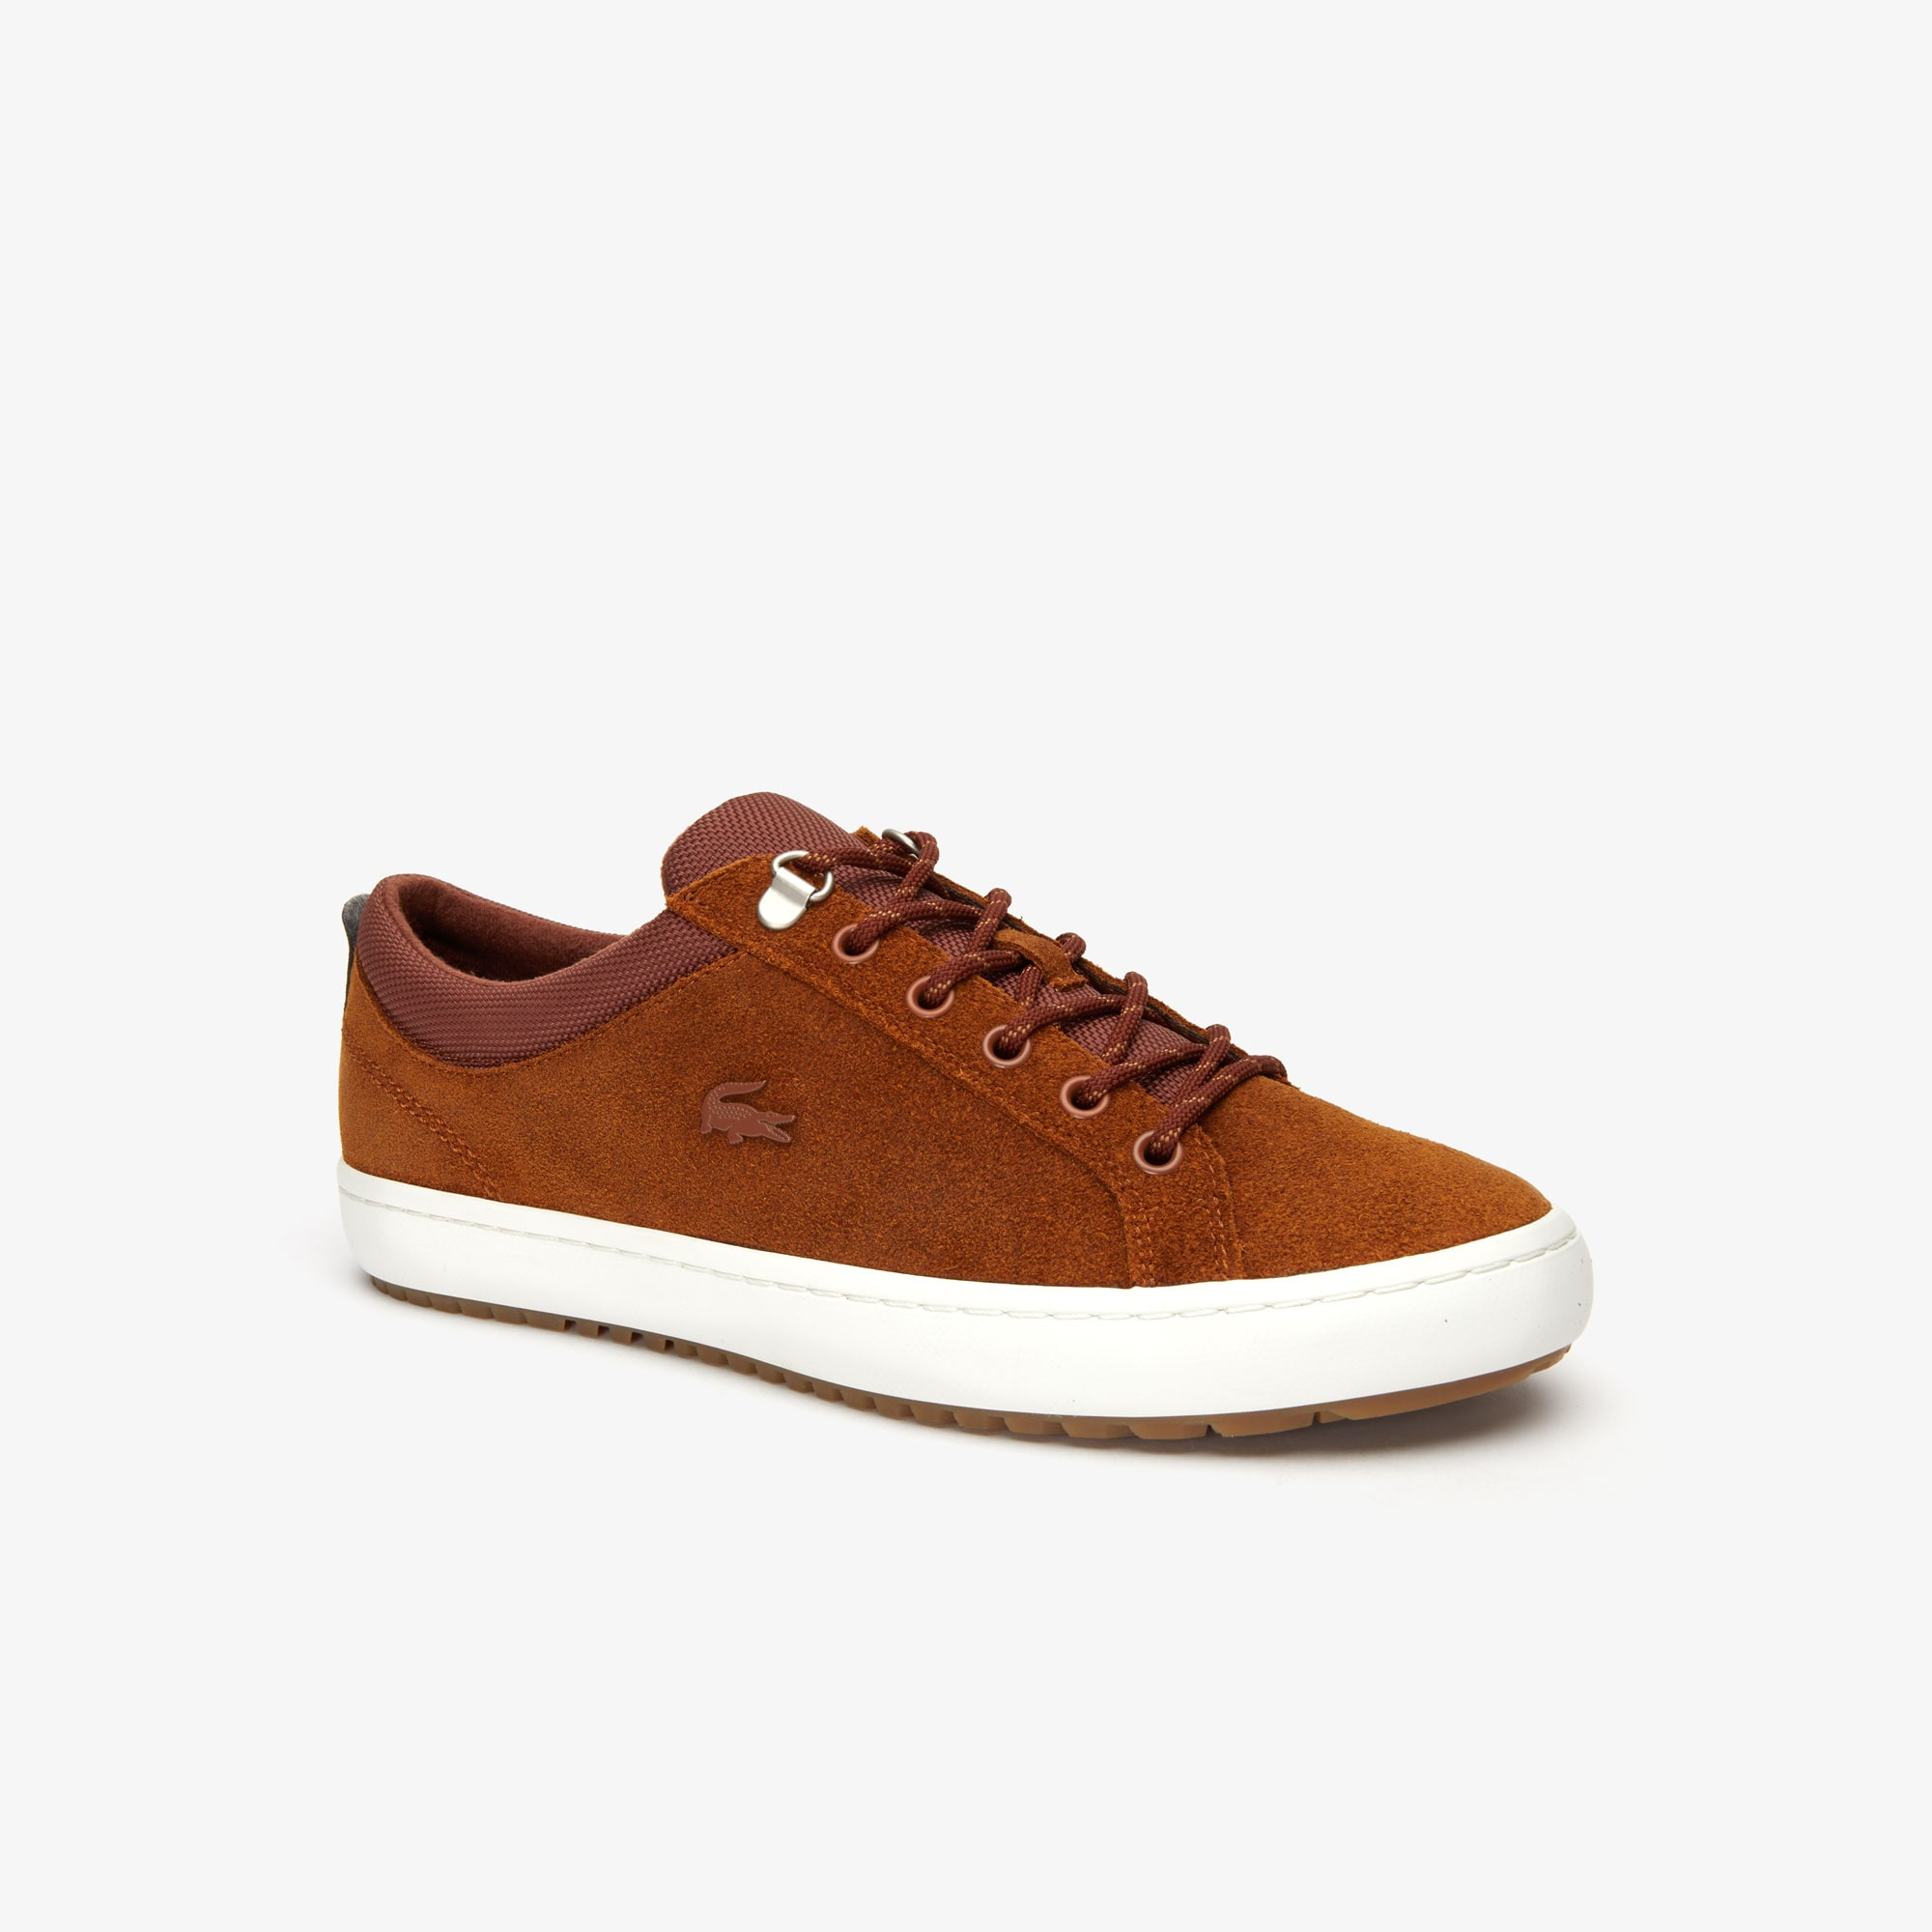 Men's Straightset Insulate Waxed Suede Trainers